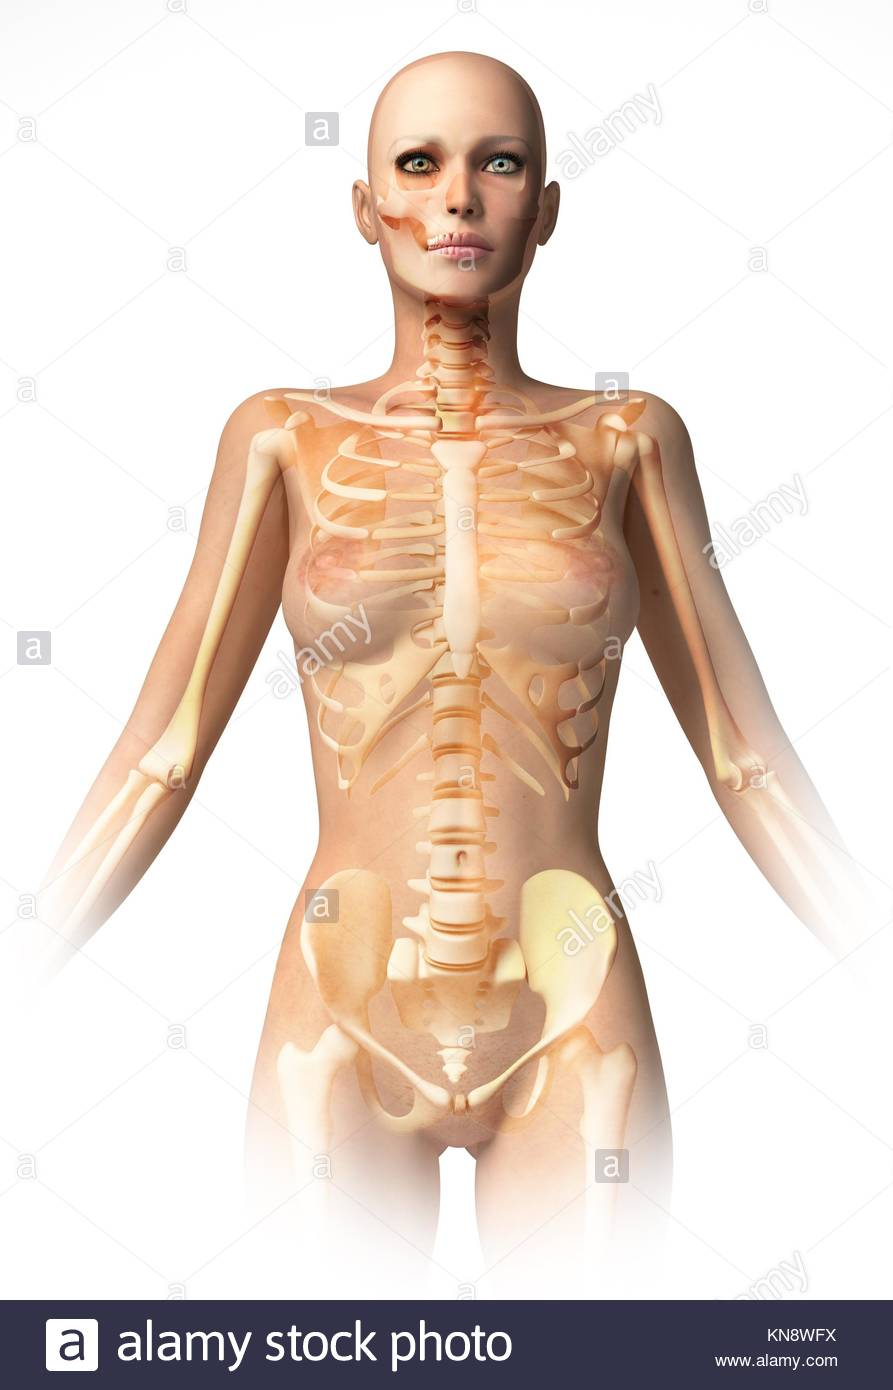 Woman body, with bone skeleton superimposed. With clipping path included. Anatomy image. - Stock Image